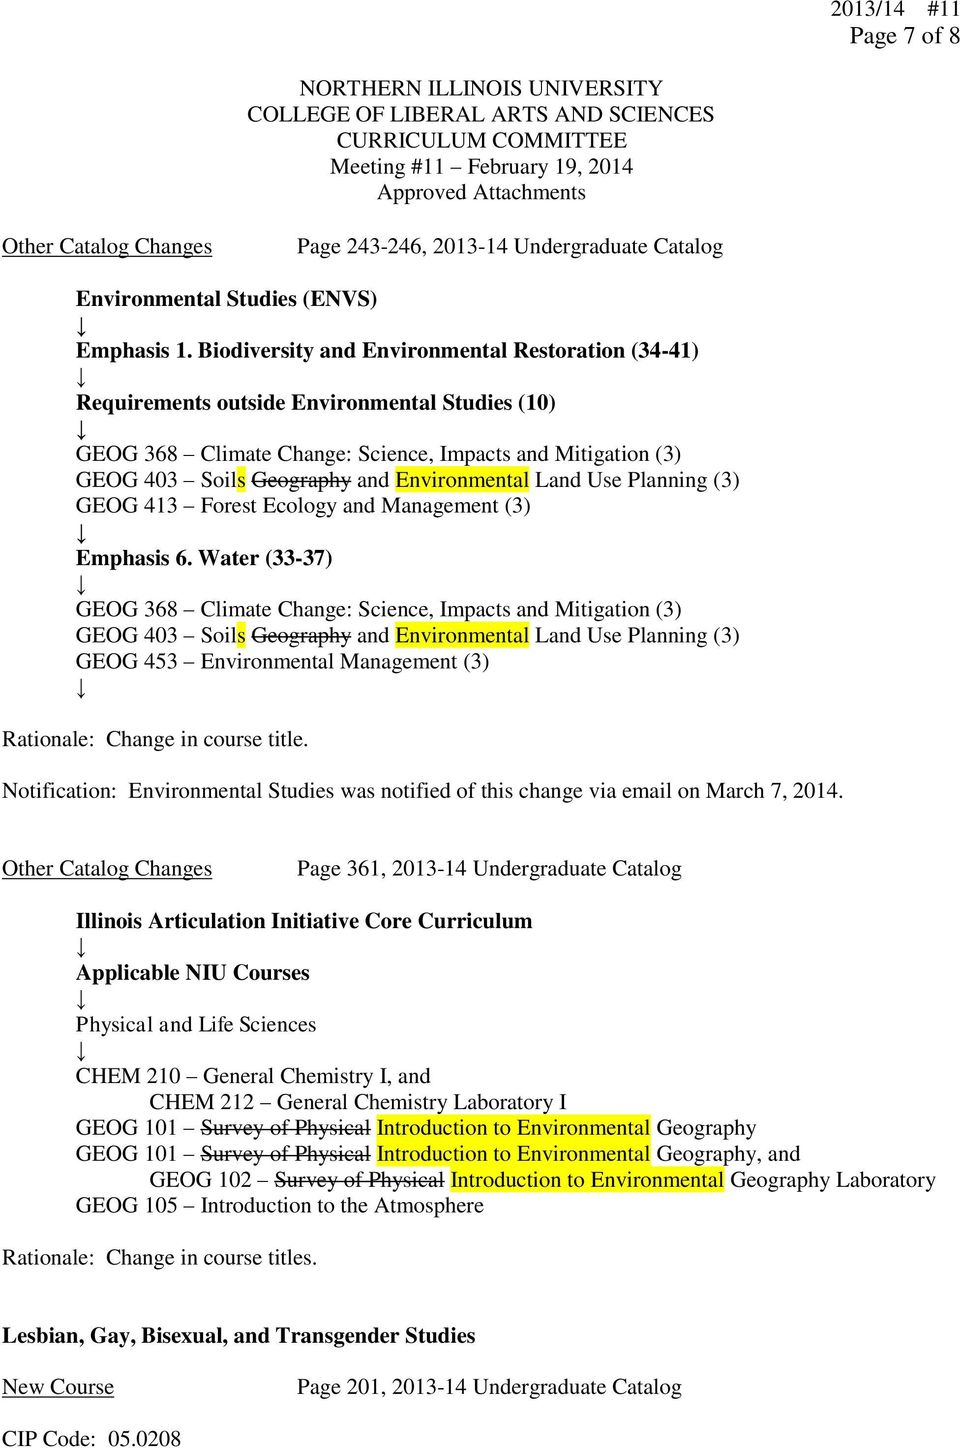 (3) Emphasis 6. Water (33-37) GEOG 368 Climate Change: Science, Impacts and Mitigation (3) GEOG 453 Environmental Management (3) Rationale: Change in course title.